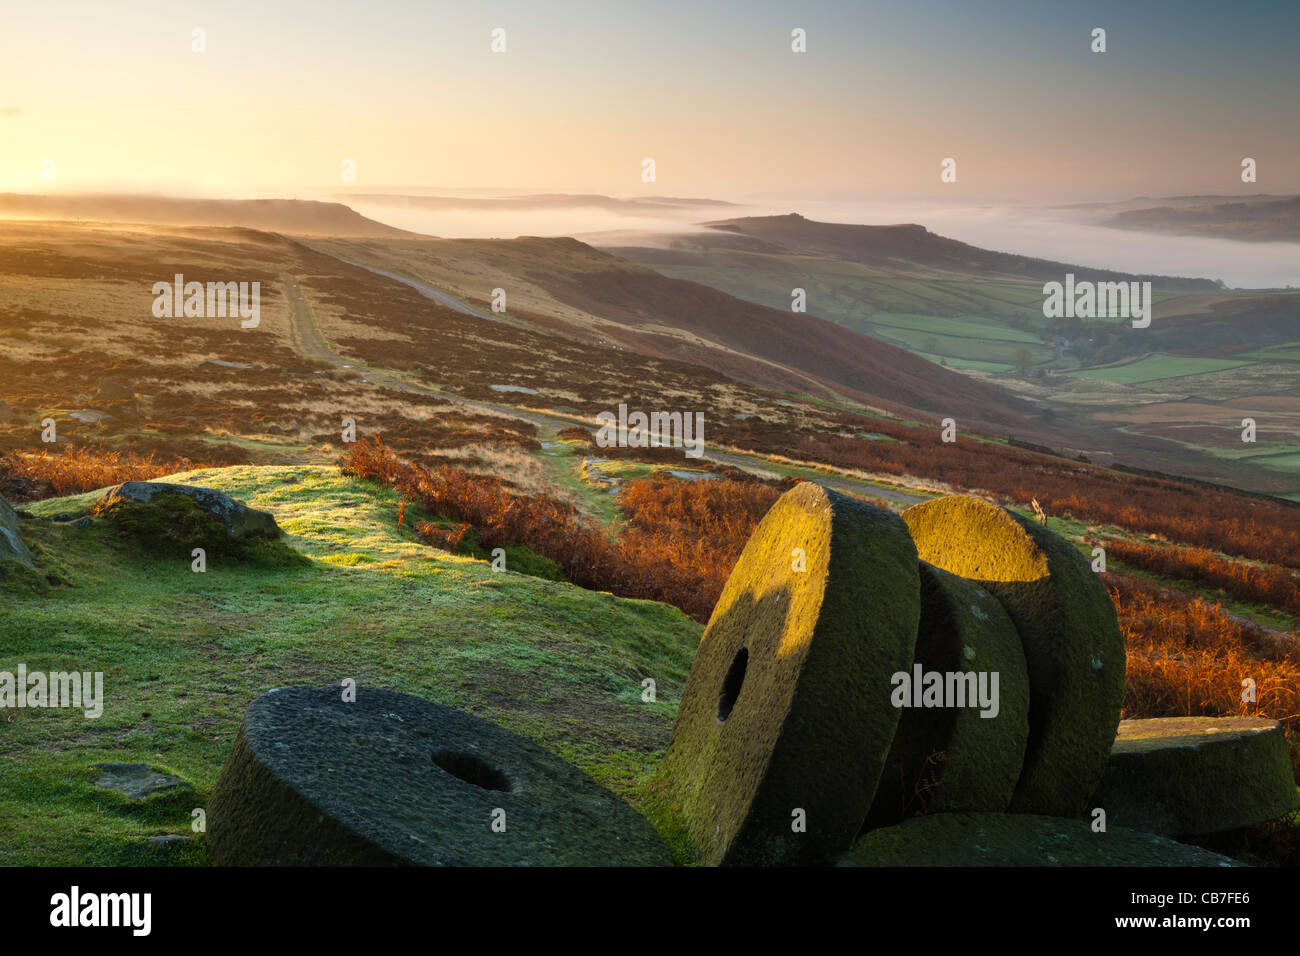 Le lever du soleil, Stanage Edge meules, parc national de Peak District, Derbyshire, Angleterre, RU Photo Stock